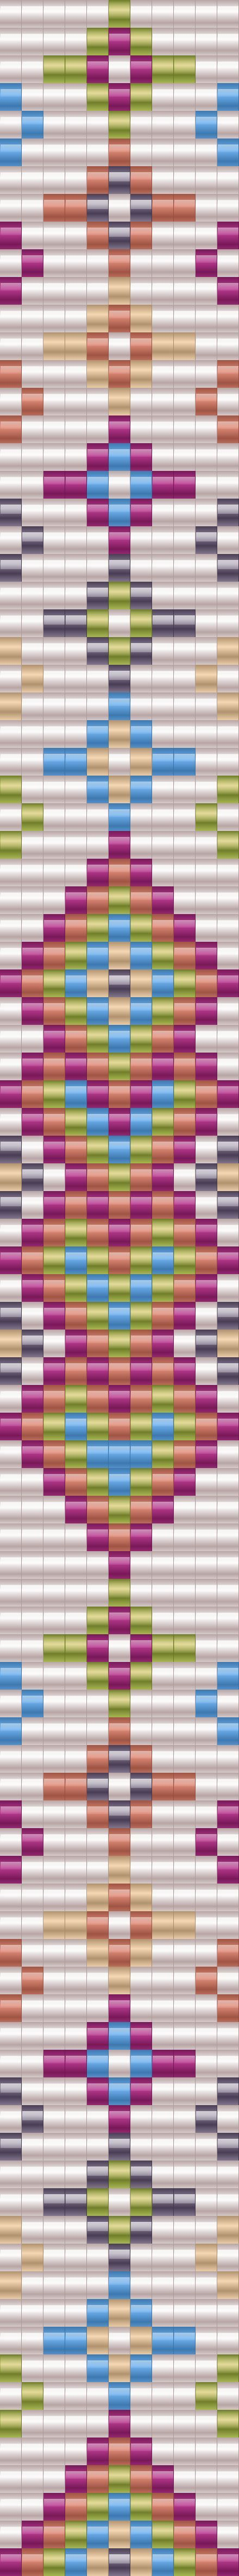 Free Loom Bead Patterns | Posted in Bead Weaving Tagged free bead patterns